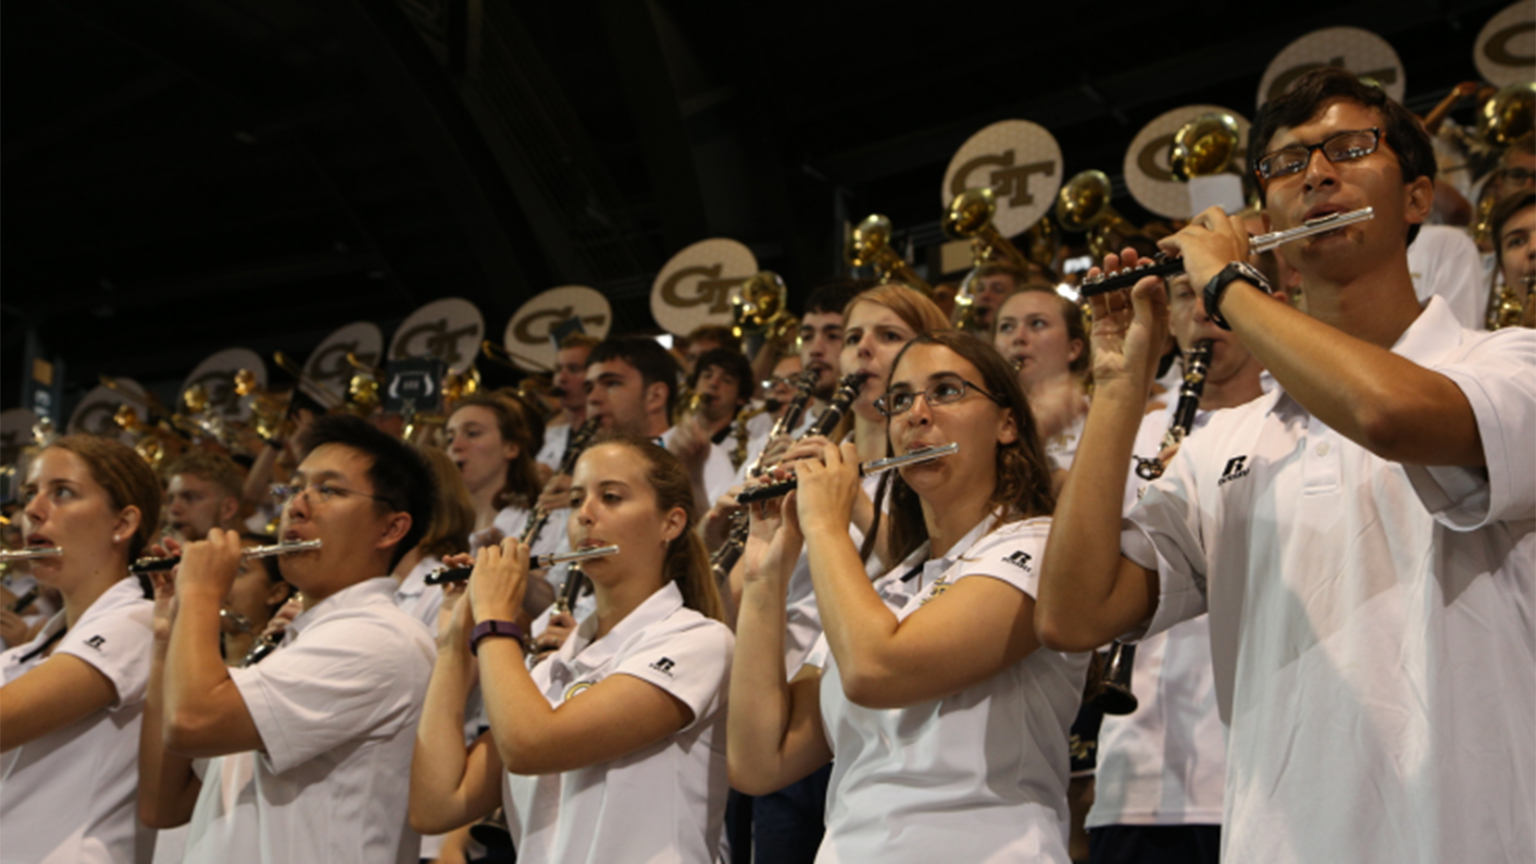 Members of the Pep Band performing at a game.